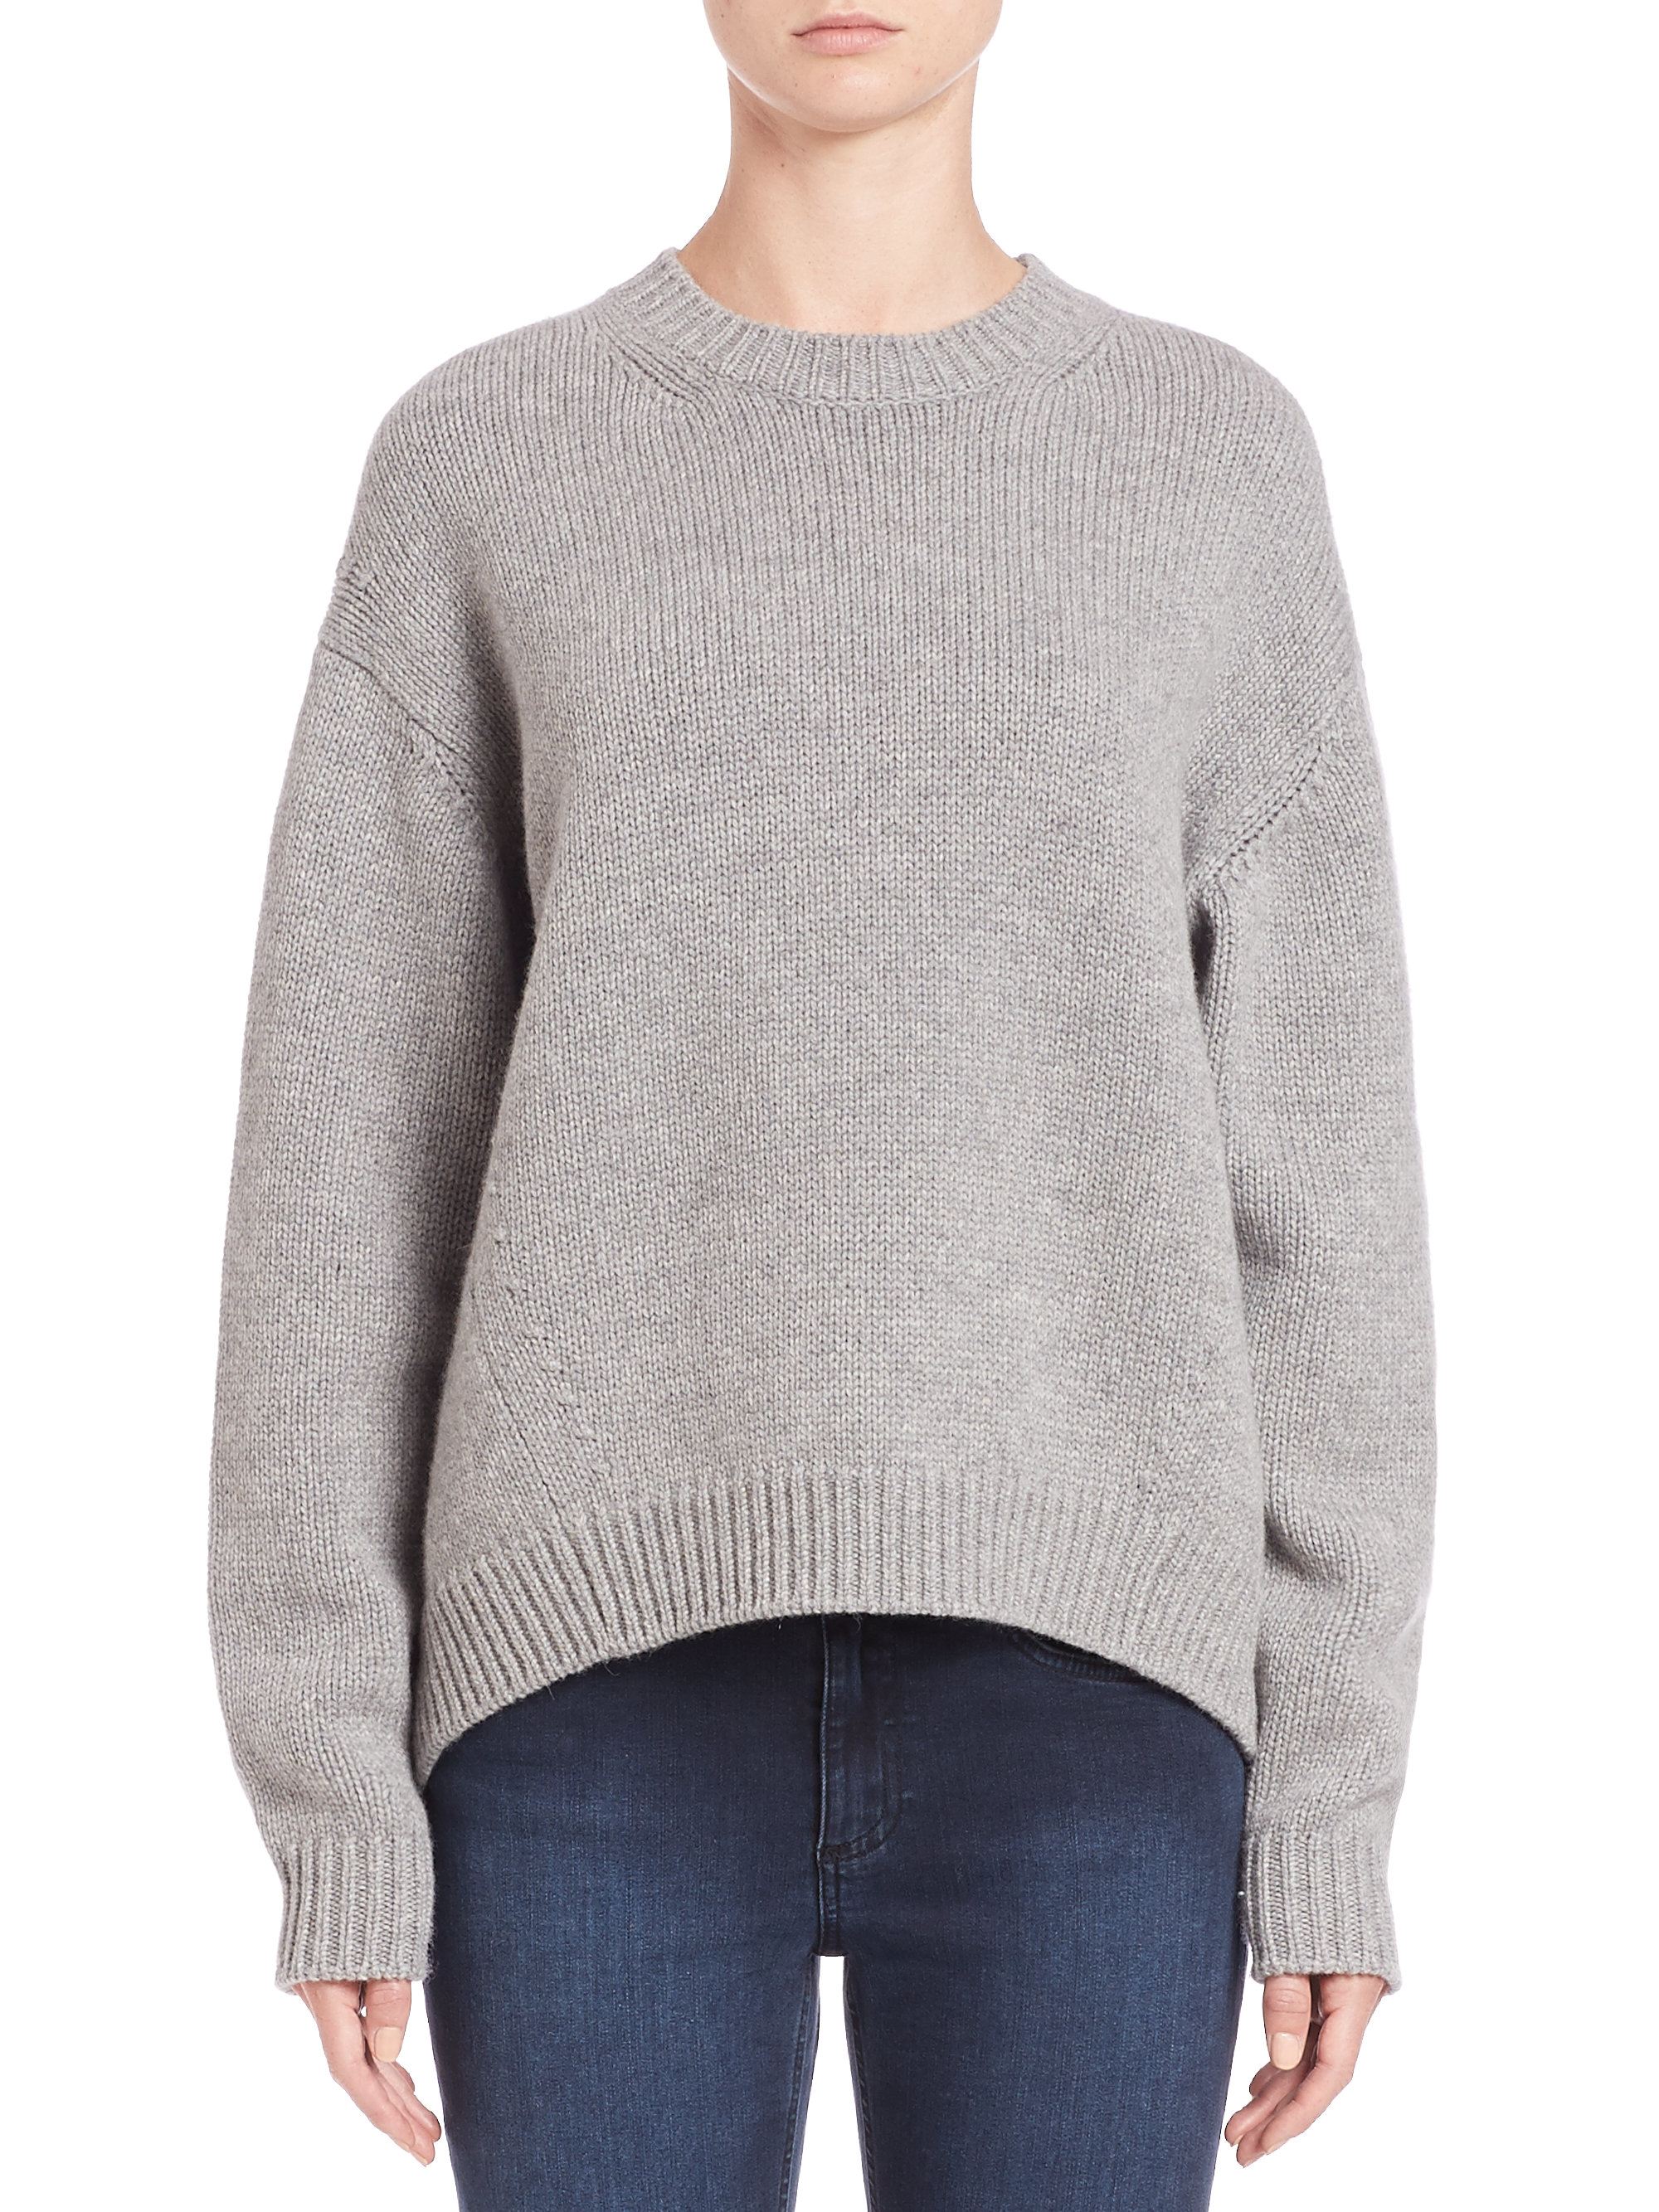 lyst acne studios crewneck wool sweater in gray. Black Bedroom Furniture Sets. Home Design Ideas